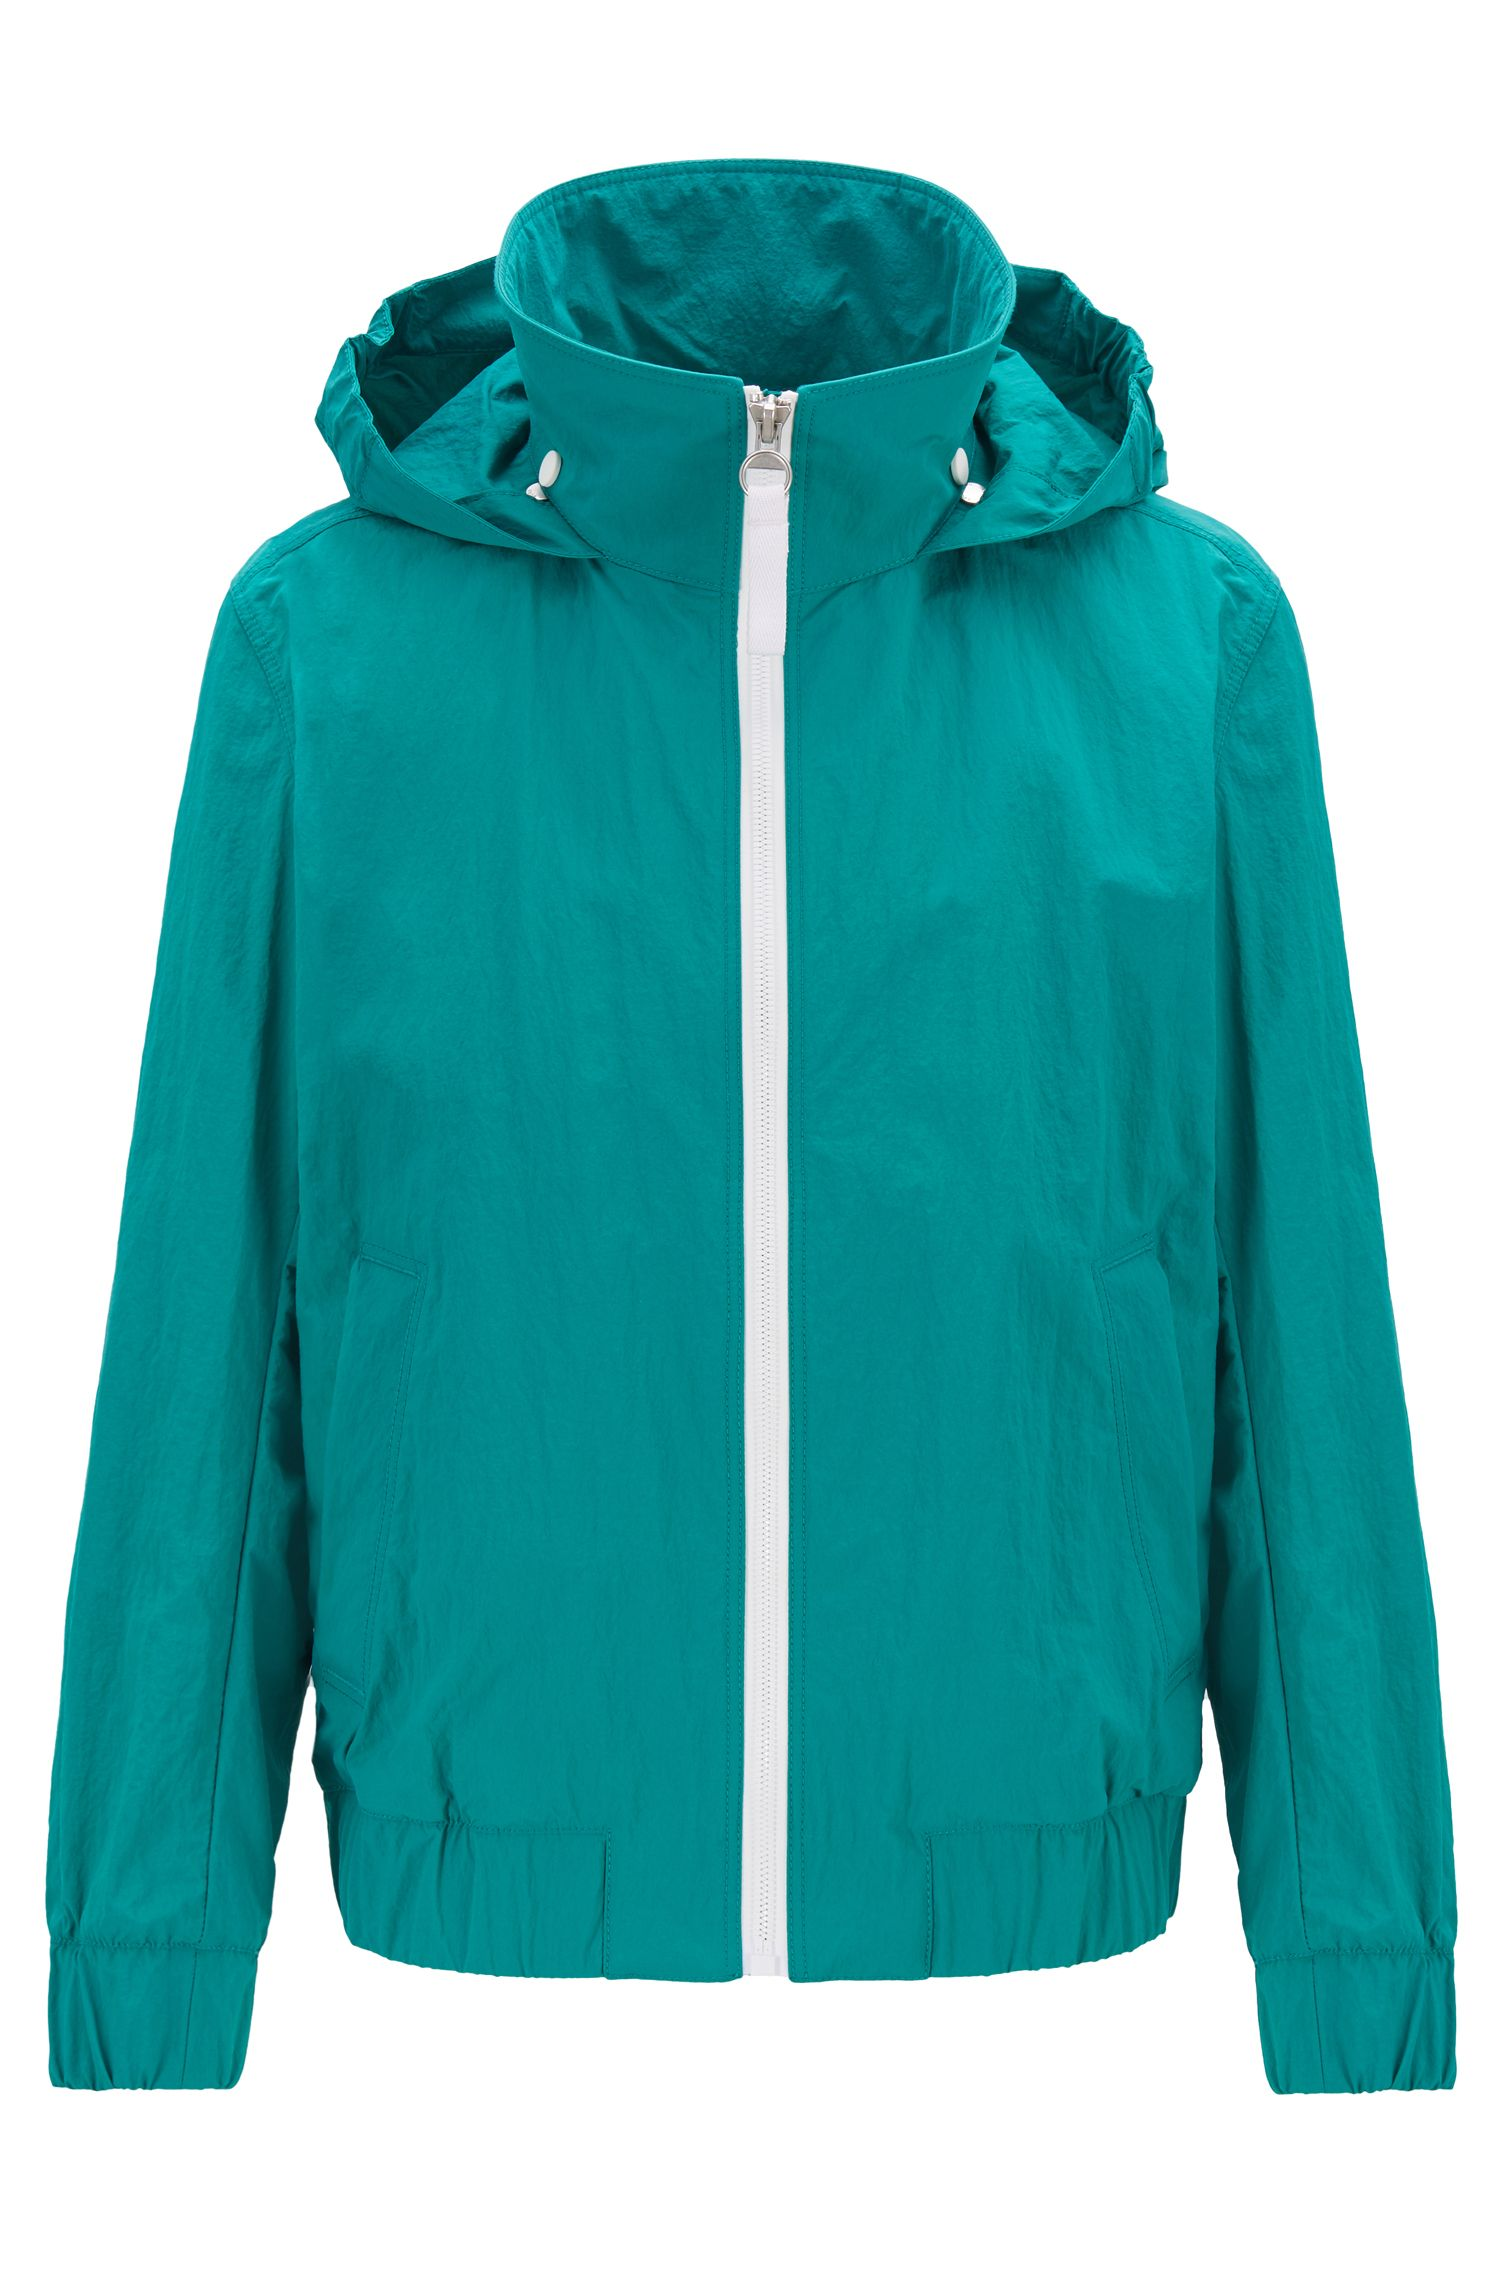 Mesh-lined jacket with packable logo hood, Green